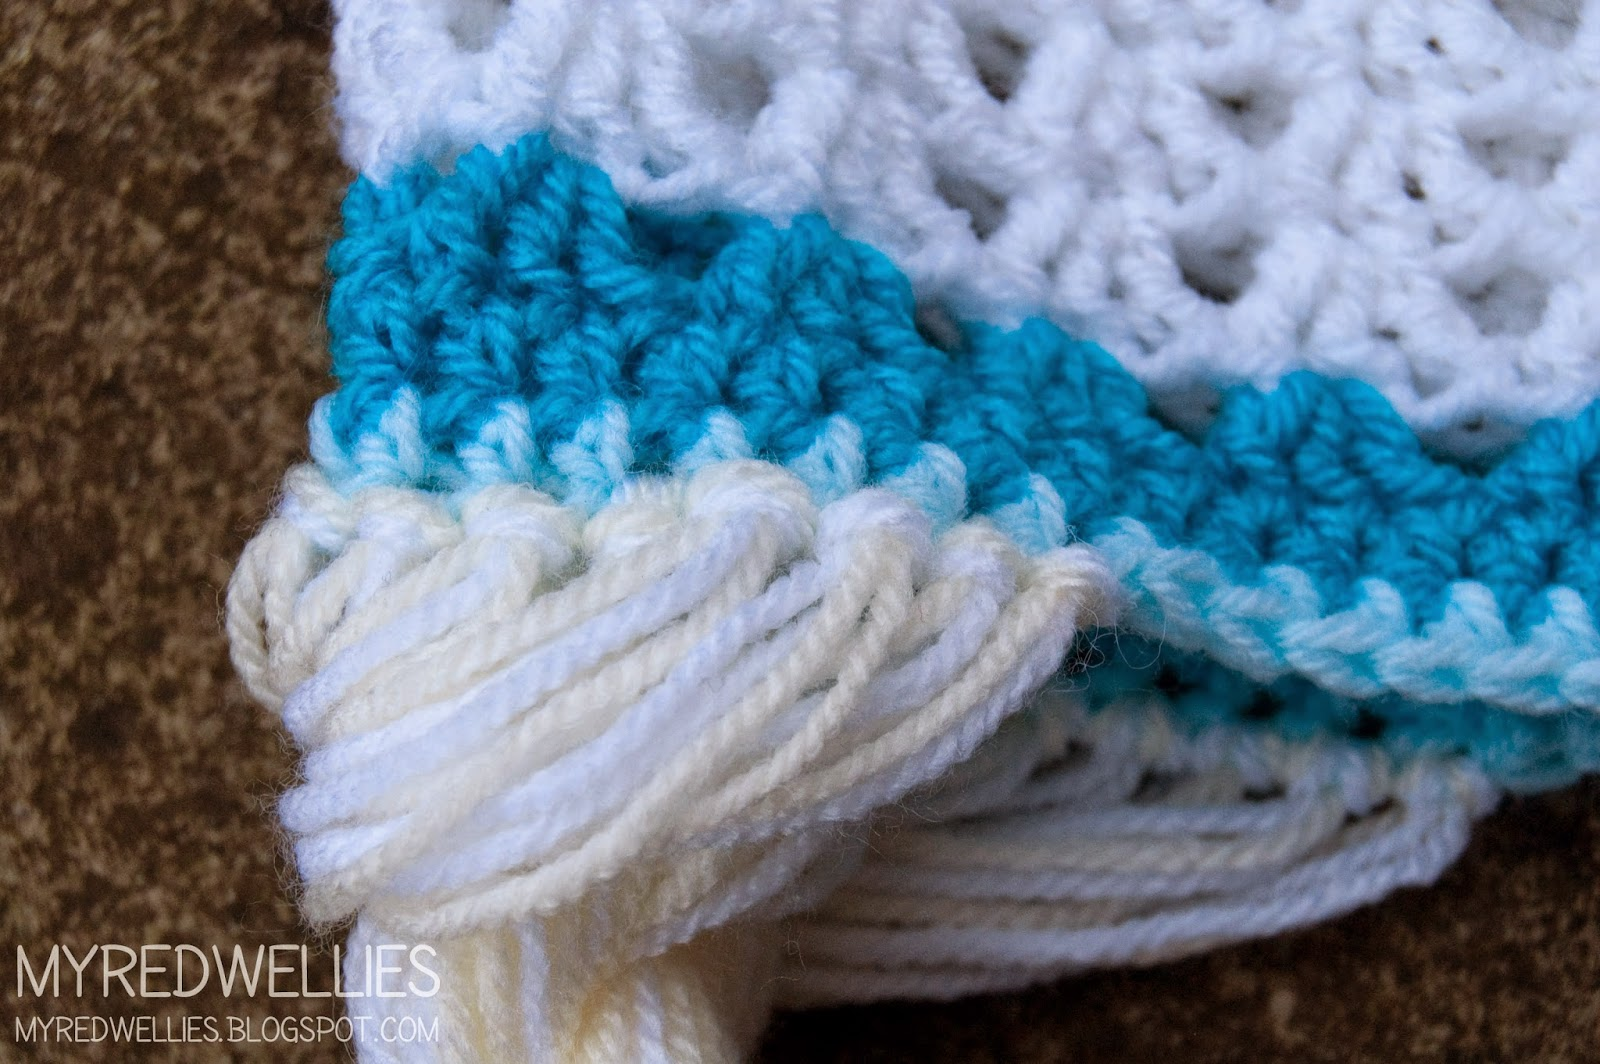 Crochet Elsa Hair Hat : My Red Wellies: Anna & Elsa crochet hats - A free Crochet pattern